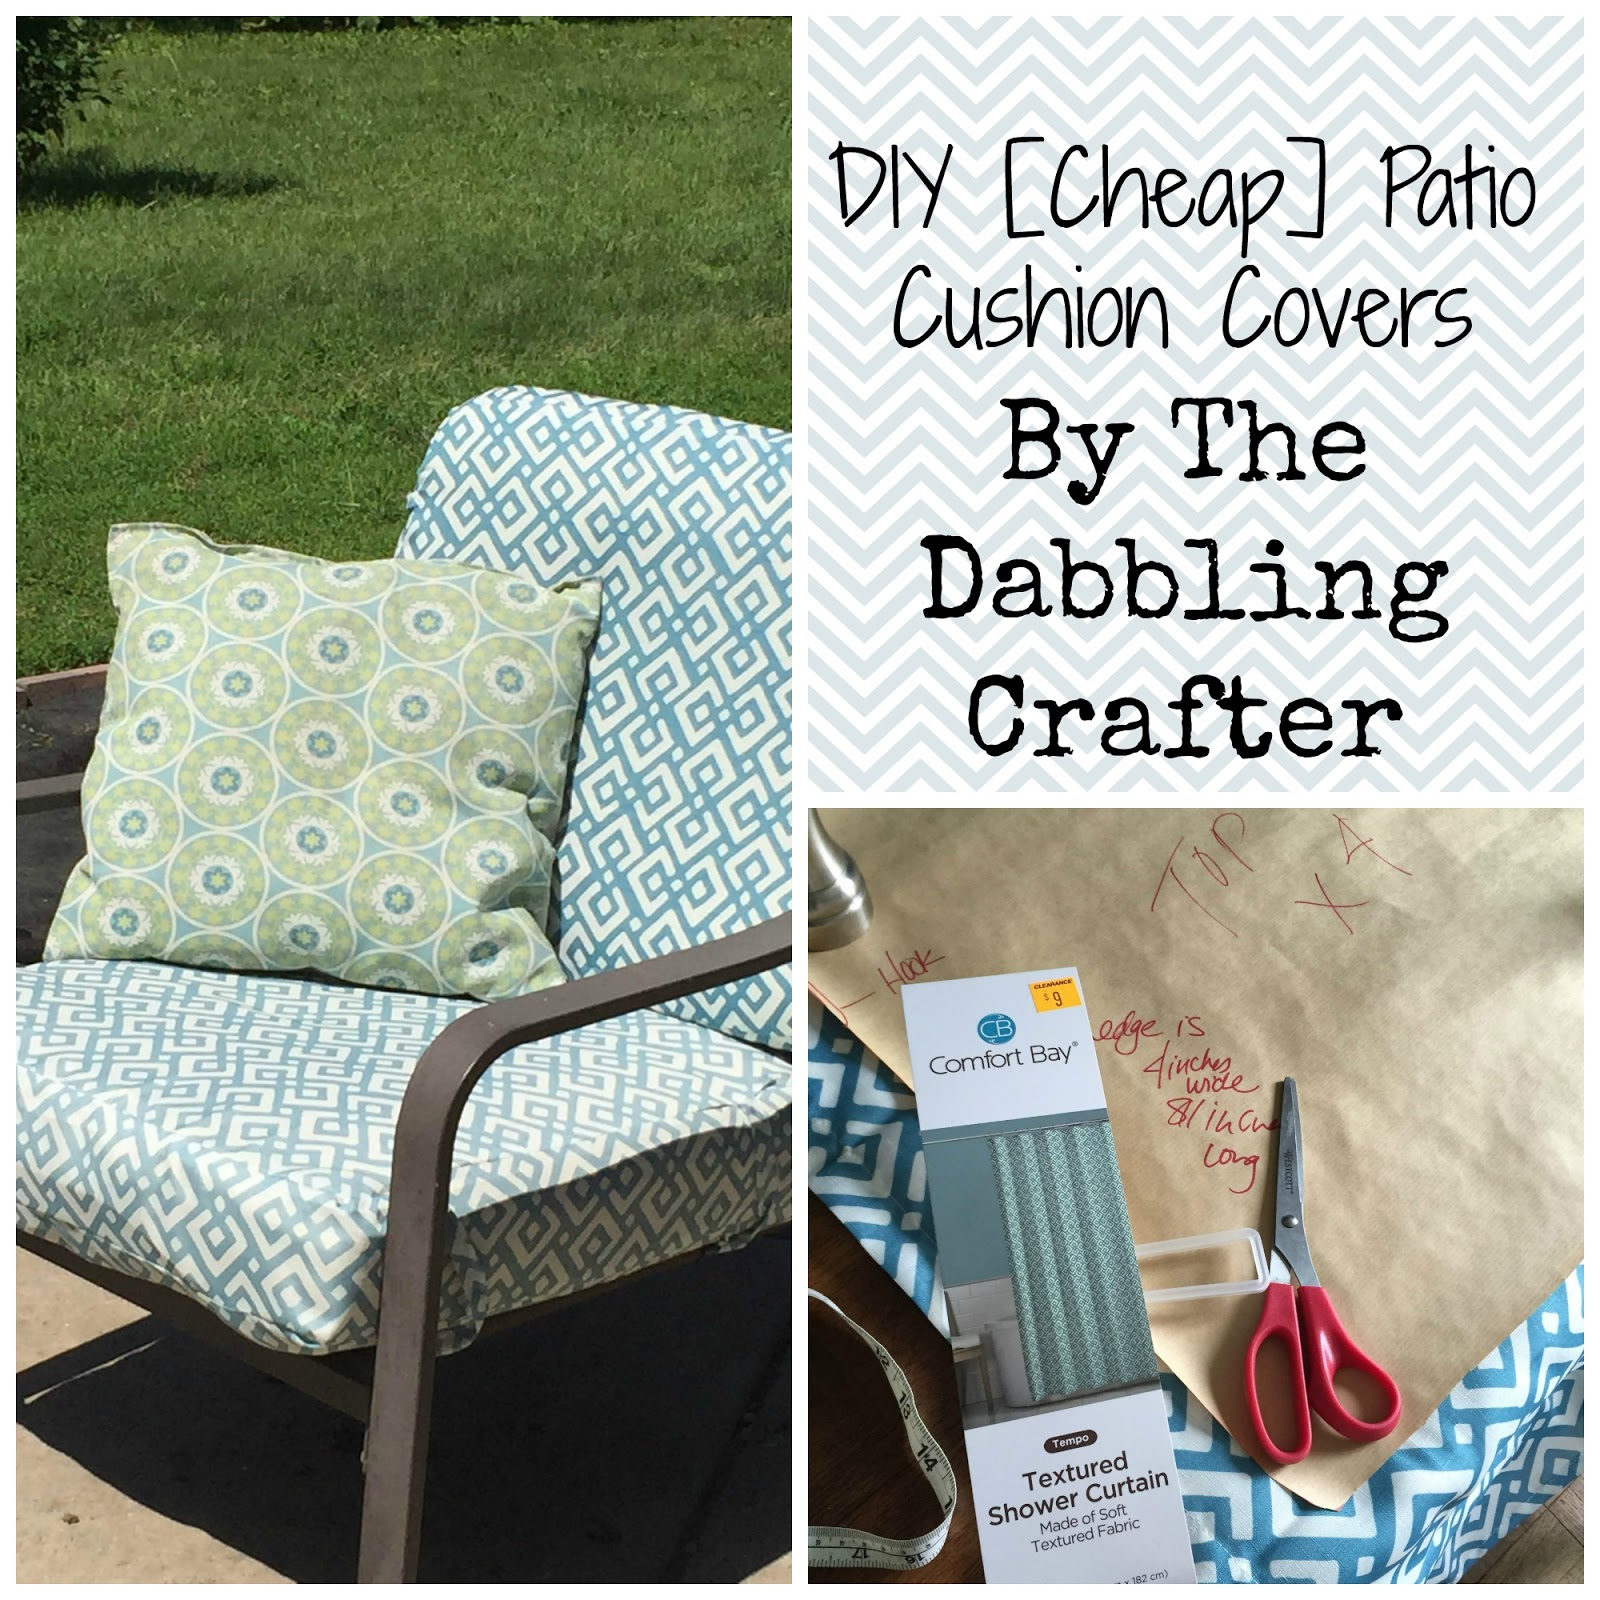 The Dabbling Crafter DIY Sunday Covering Patio Cushions